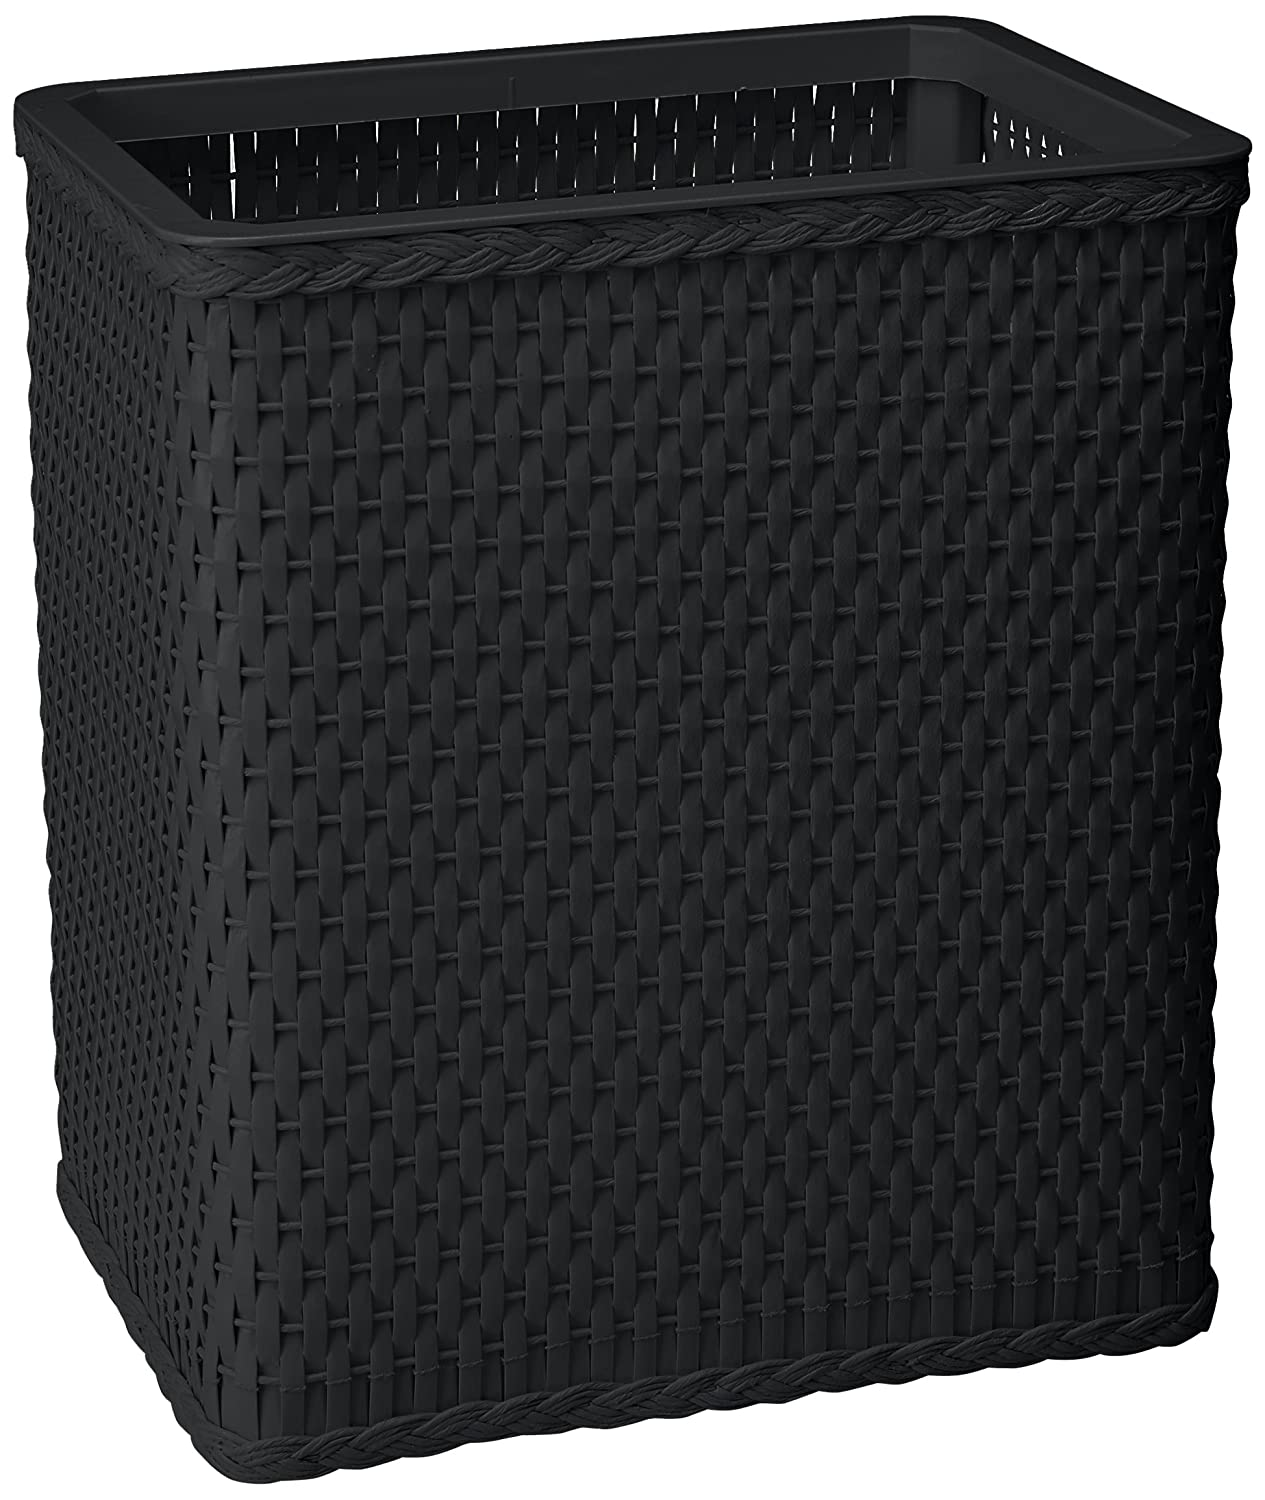 Lamont Home Carter Collection - Rectangular Wastebasket Lamont Limited 1858052